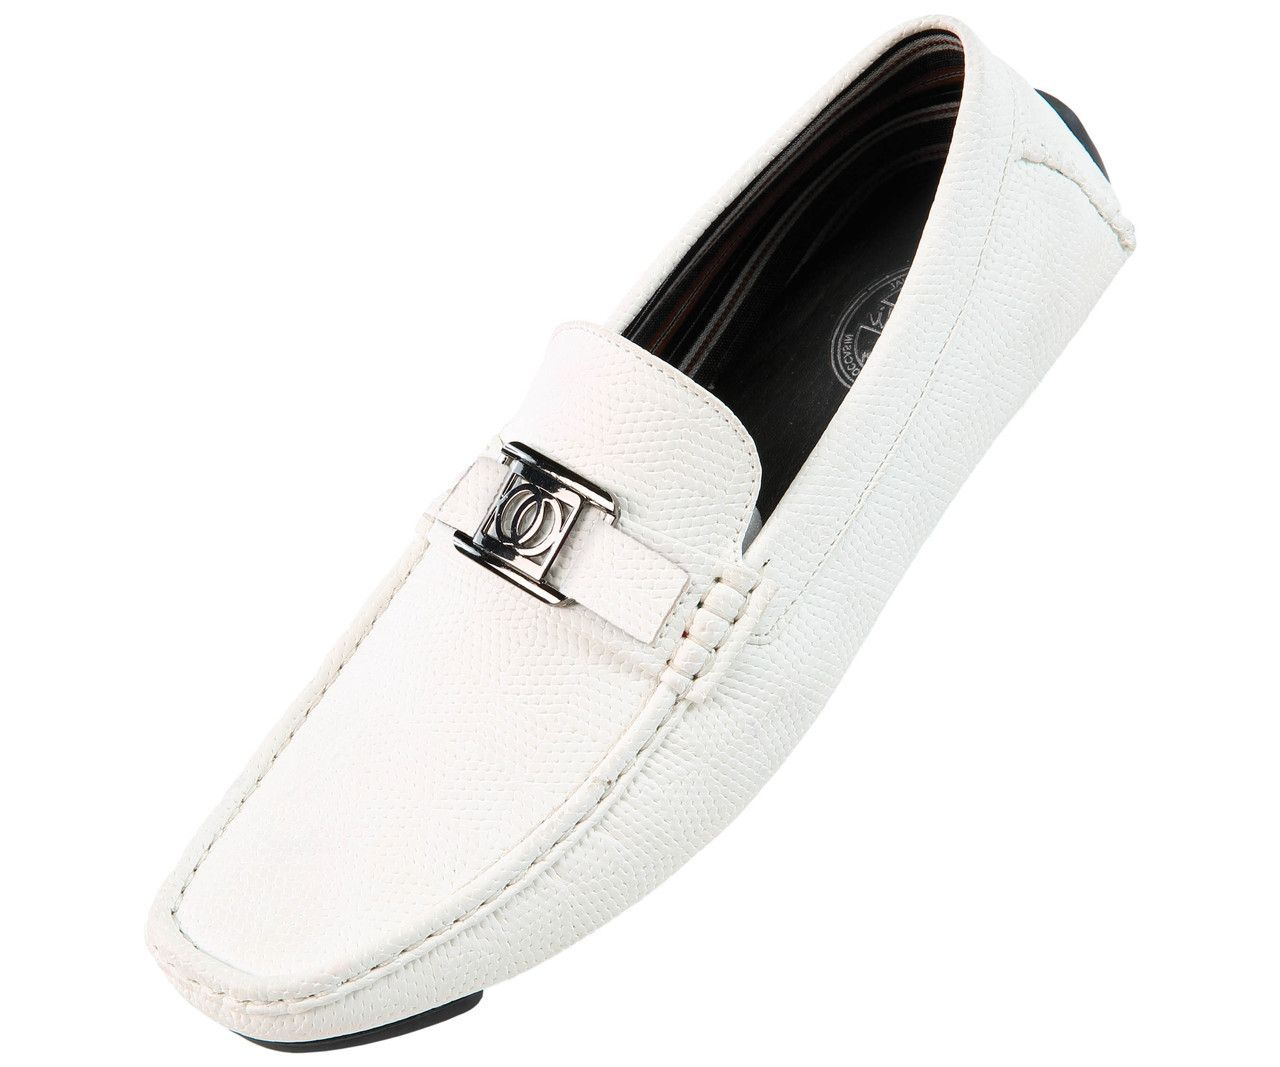 f80b86e8c747 Just Mens Shoes - Amali Mens White Smooth Casual Driving Moccasin Loafer  Style 1411-007